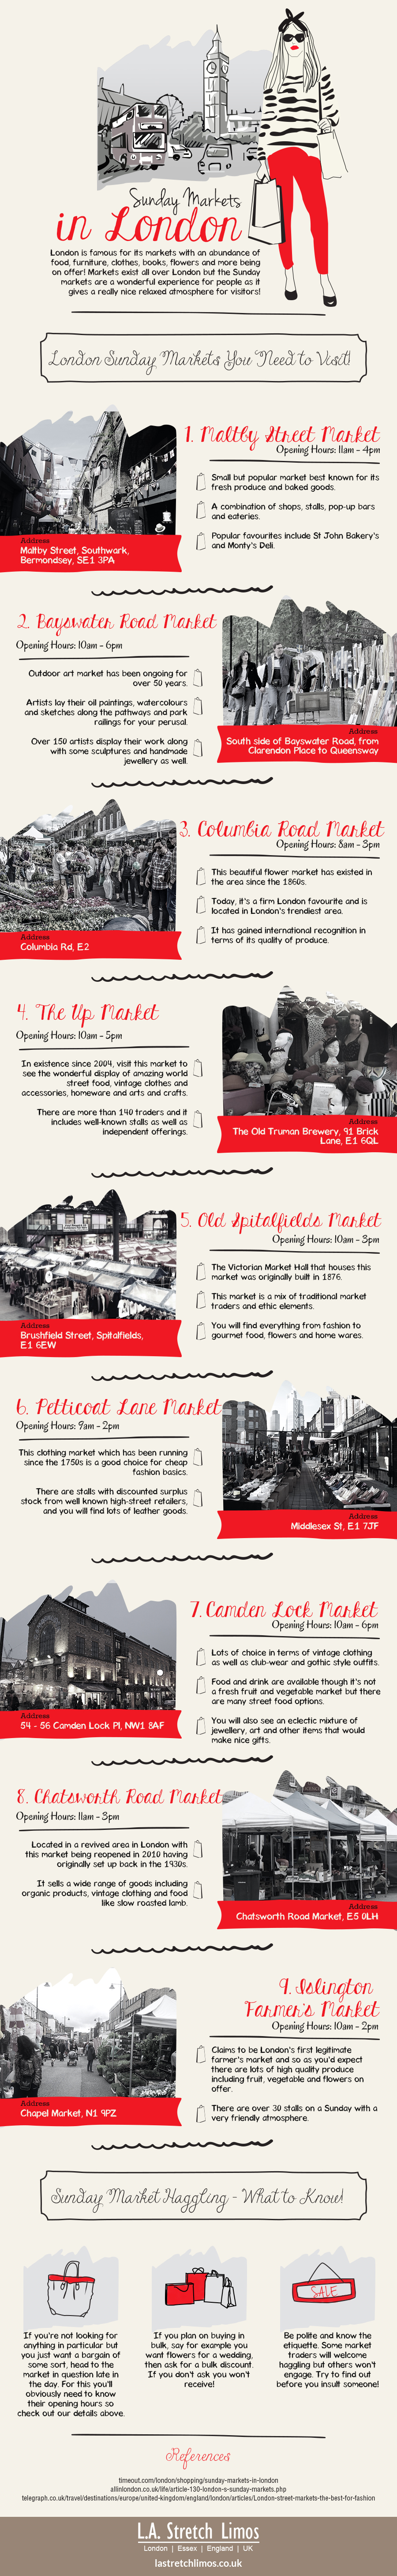 Sunday Markets In London infographic